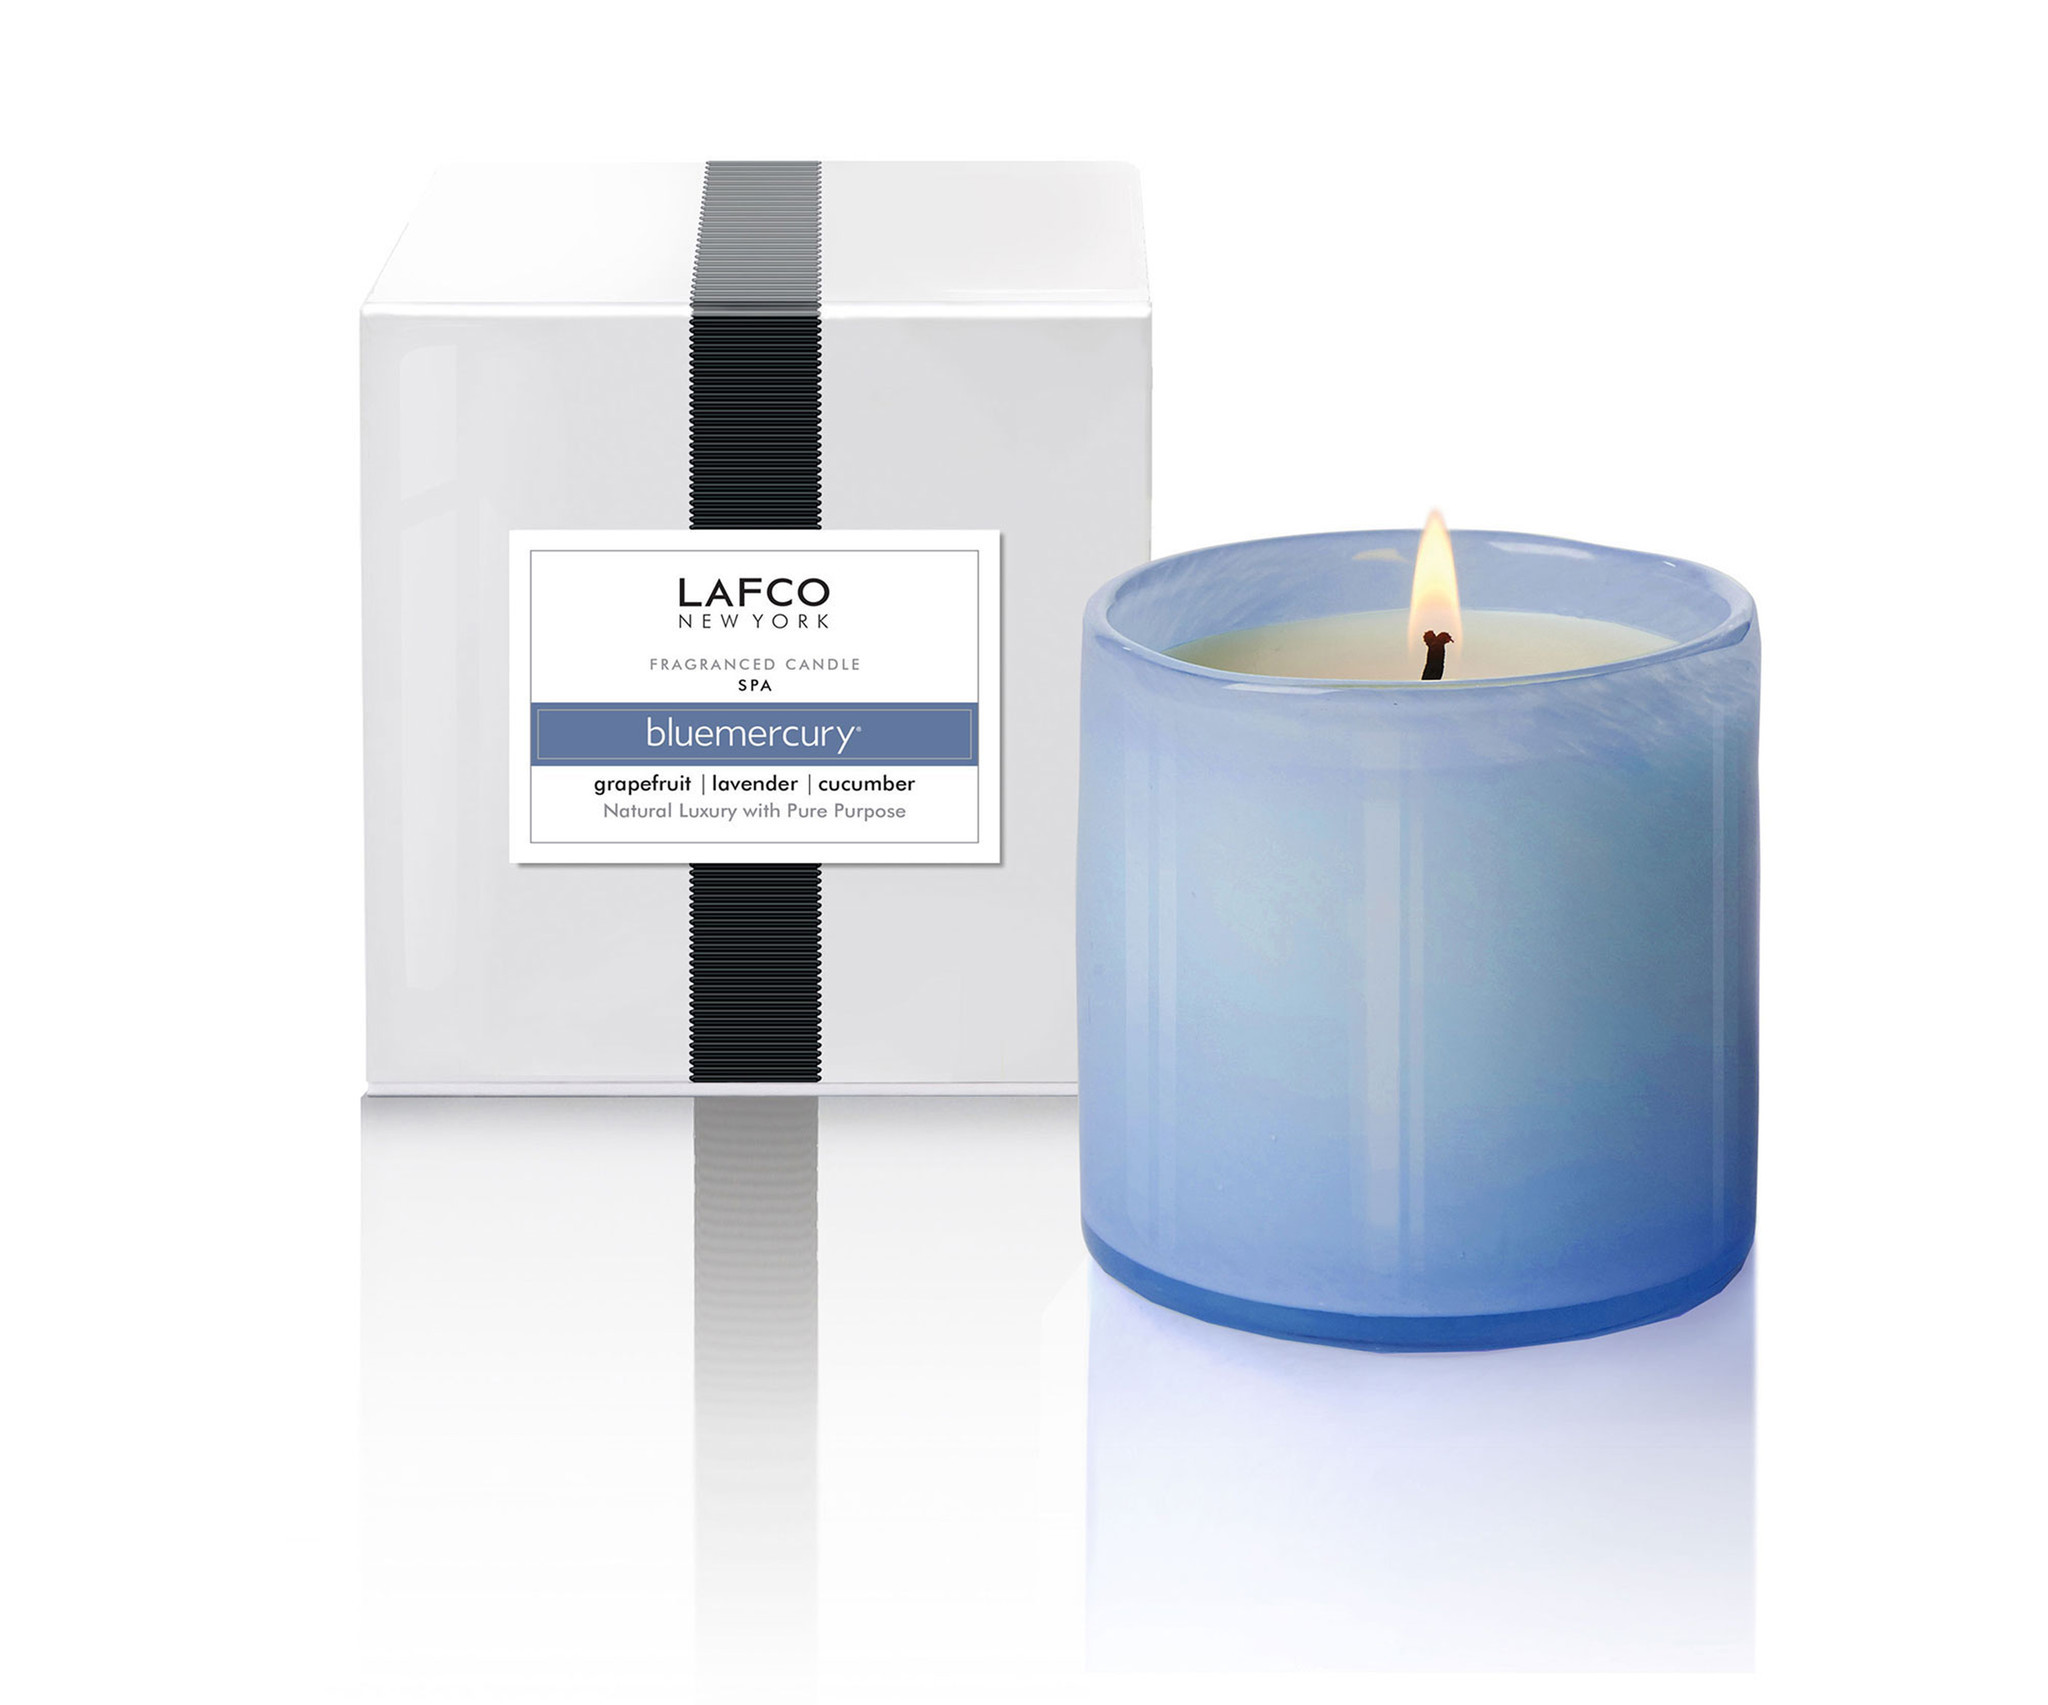 Bluemercury X LAFCO's hand-poured candle.